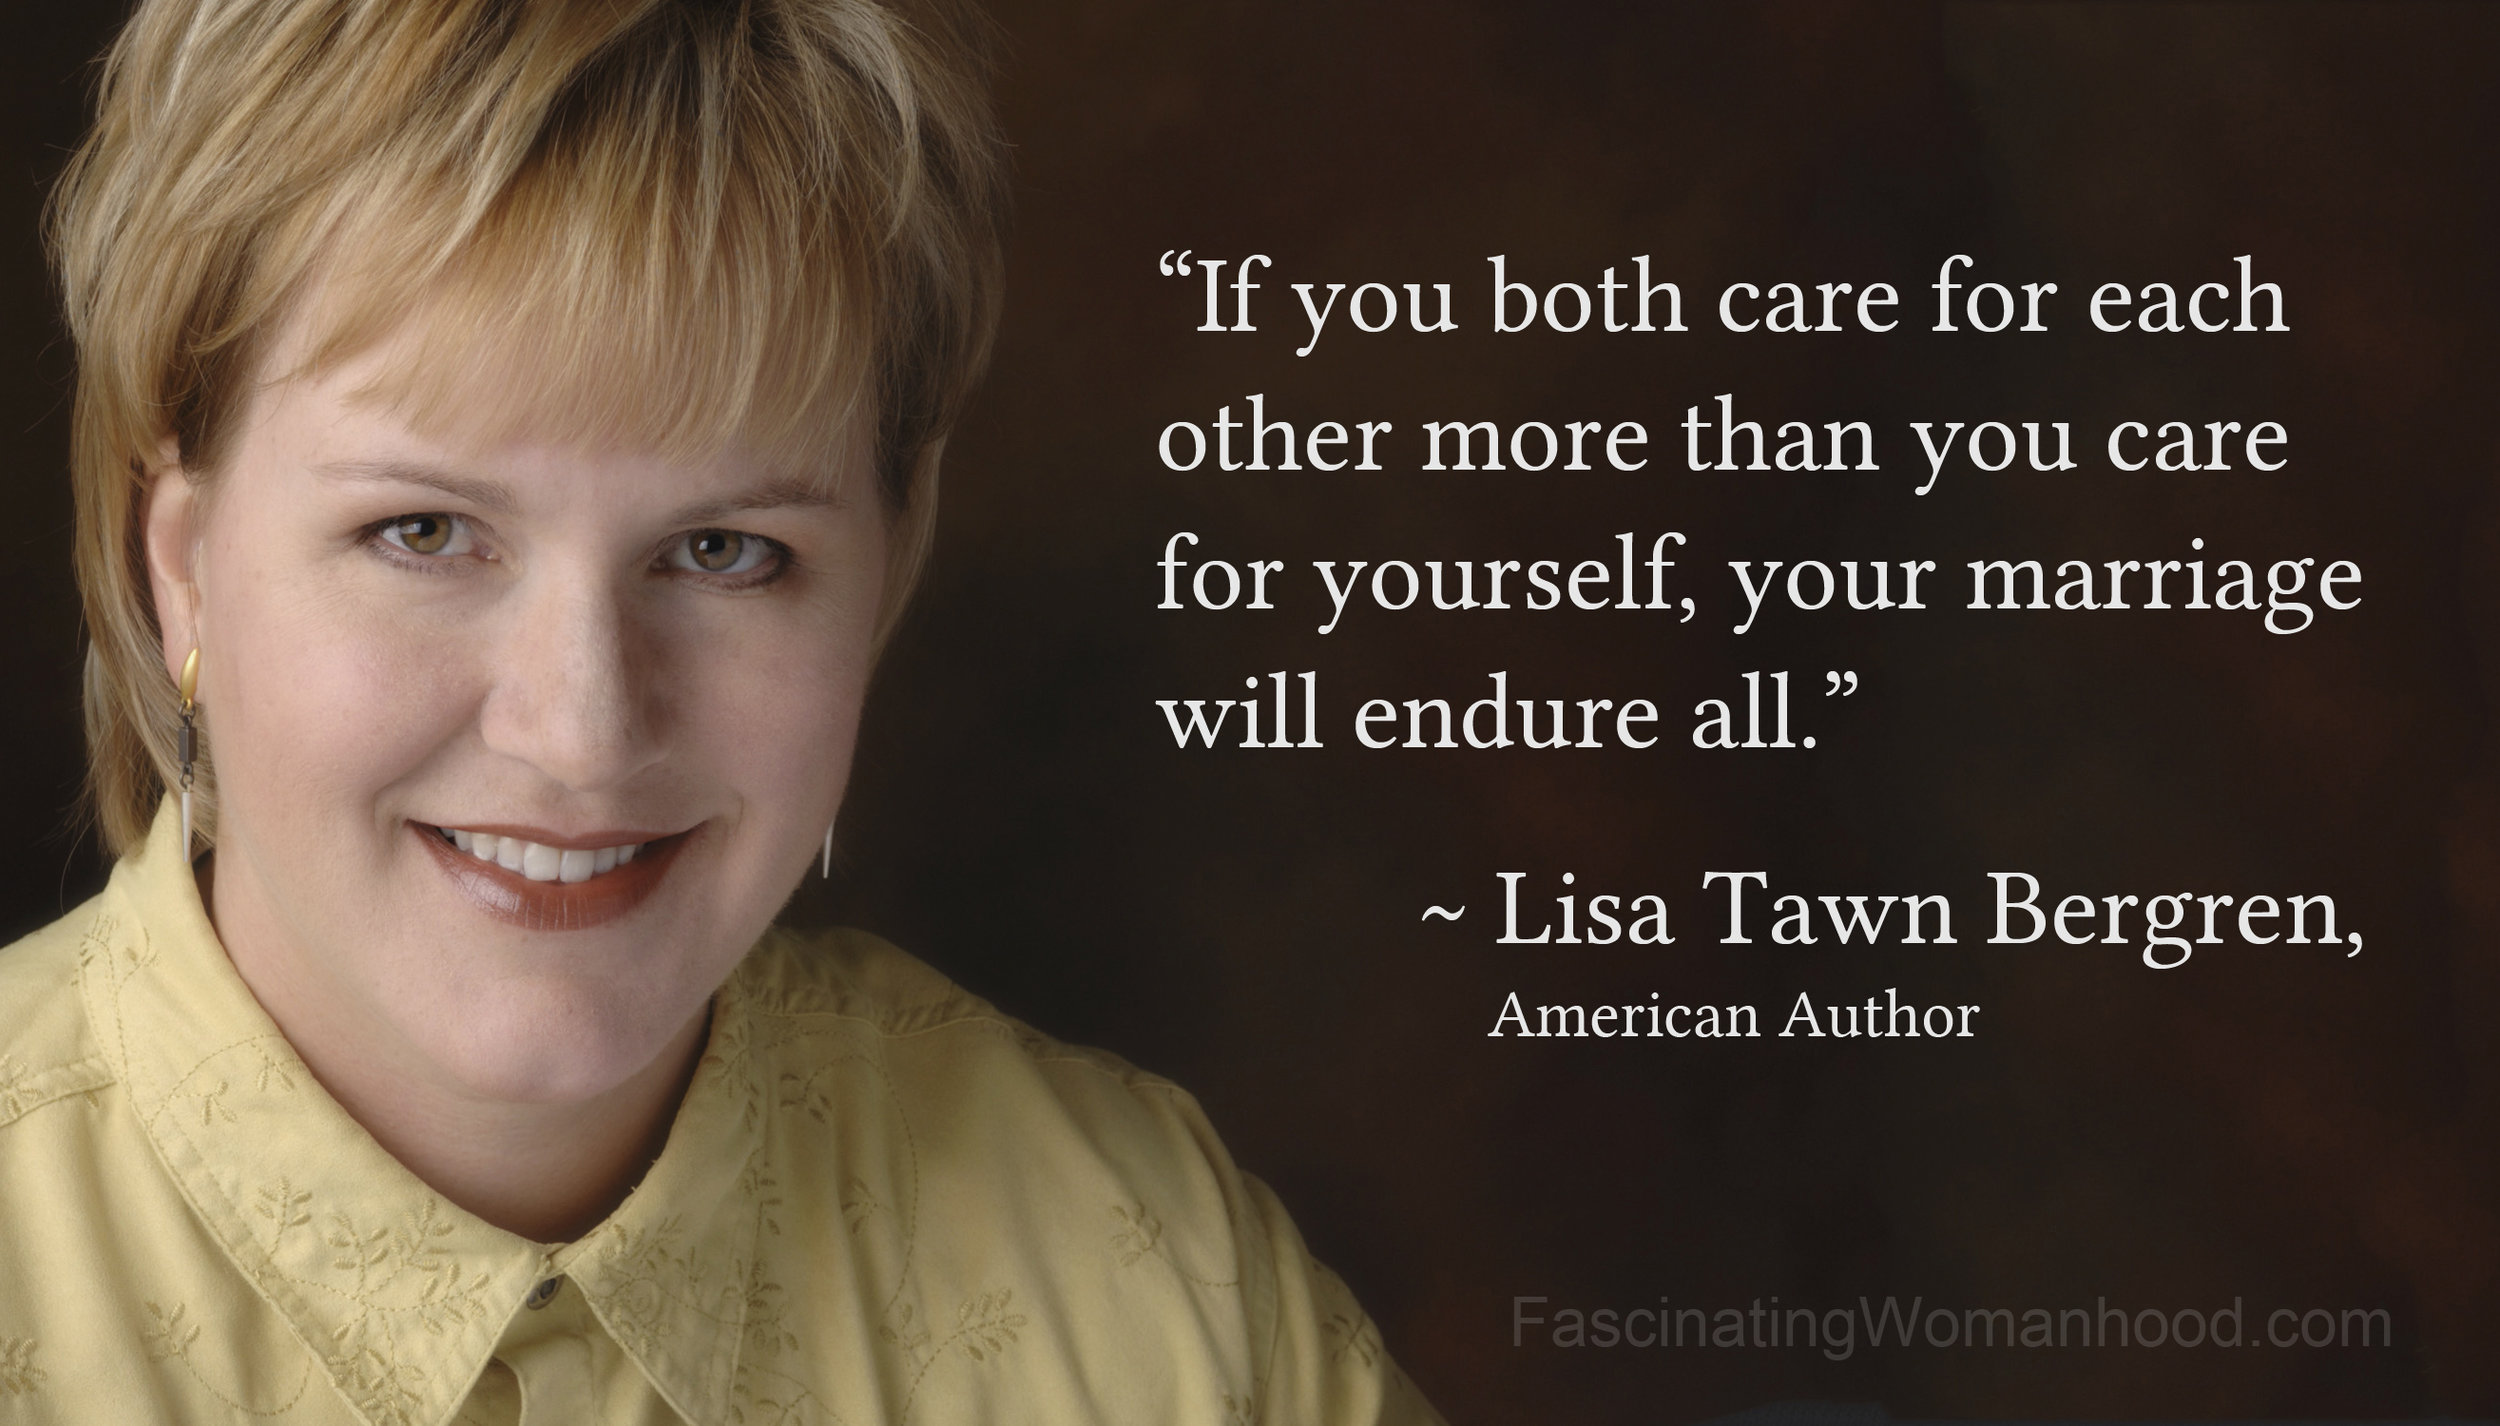 A Quote by Lisa Tawn Bergren.jpg